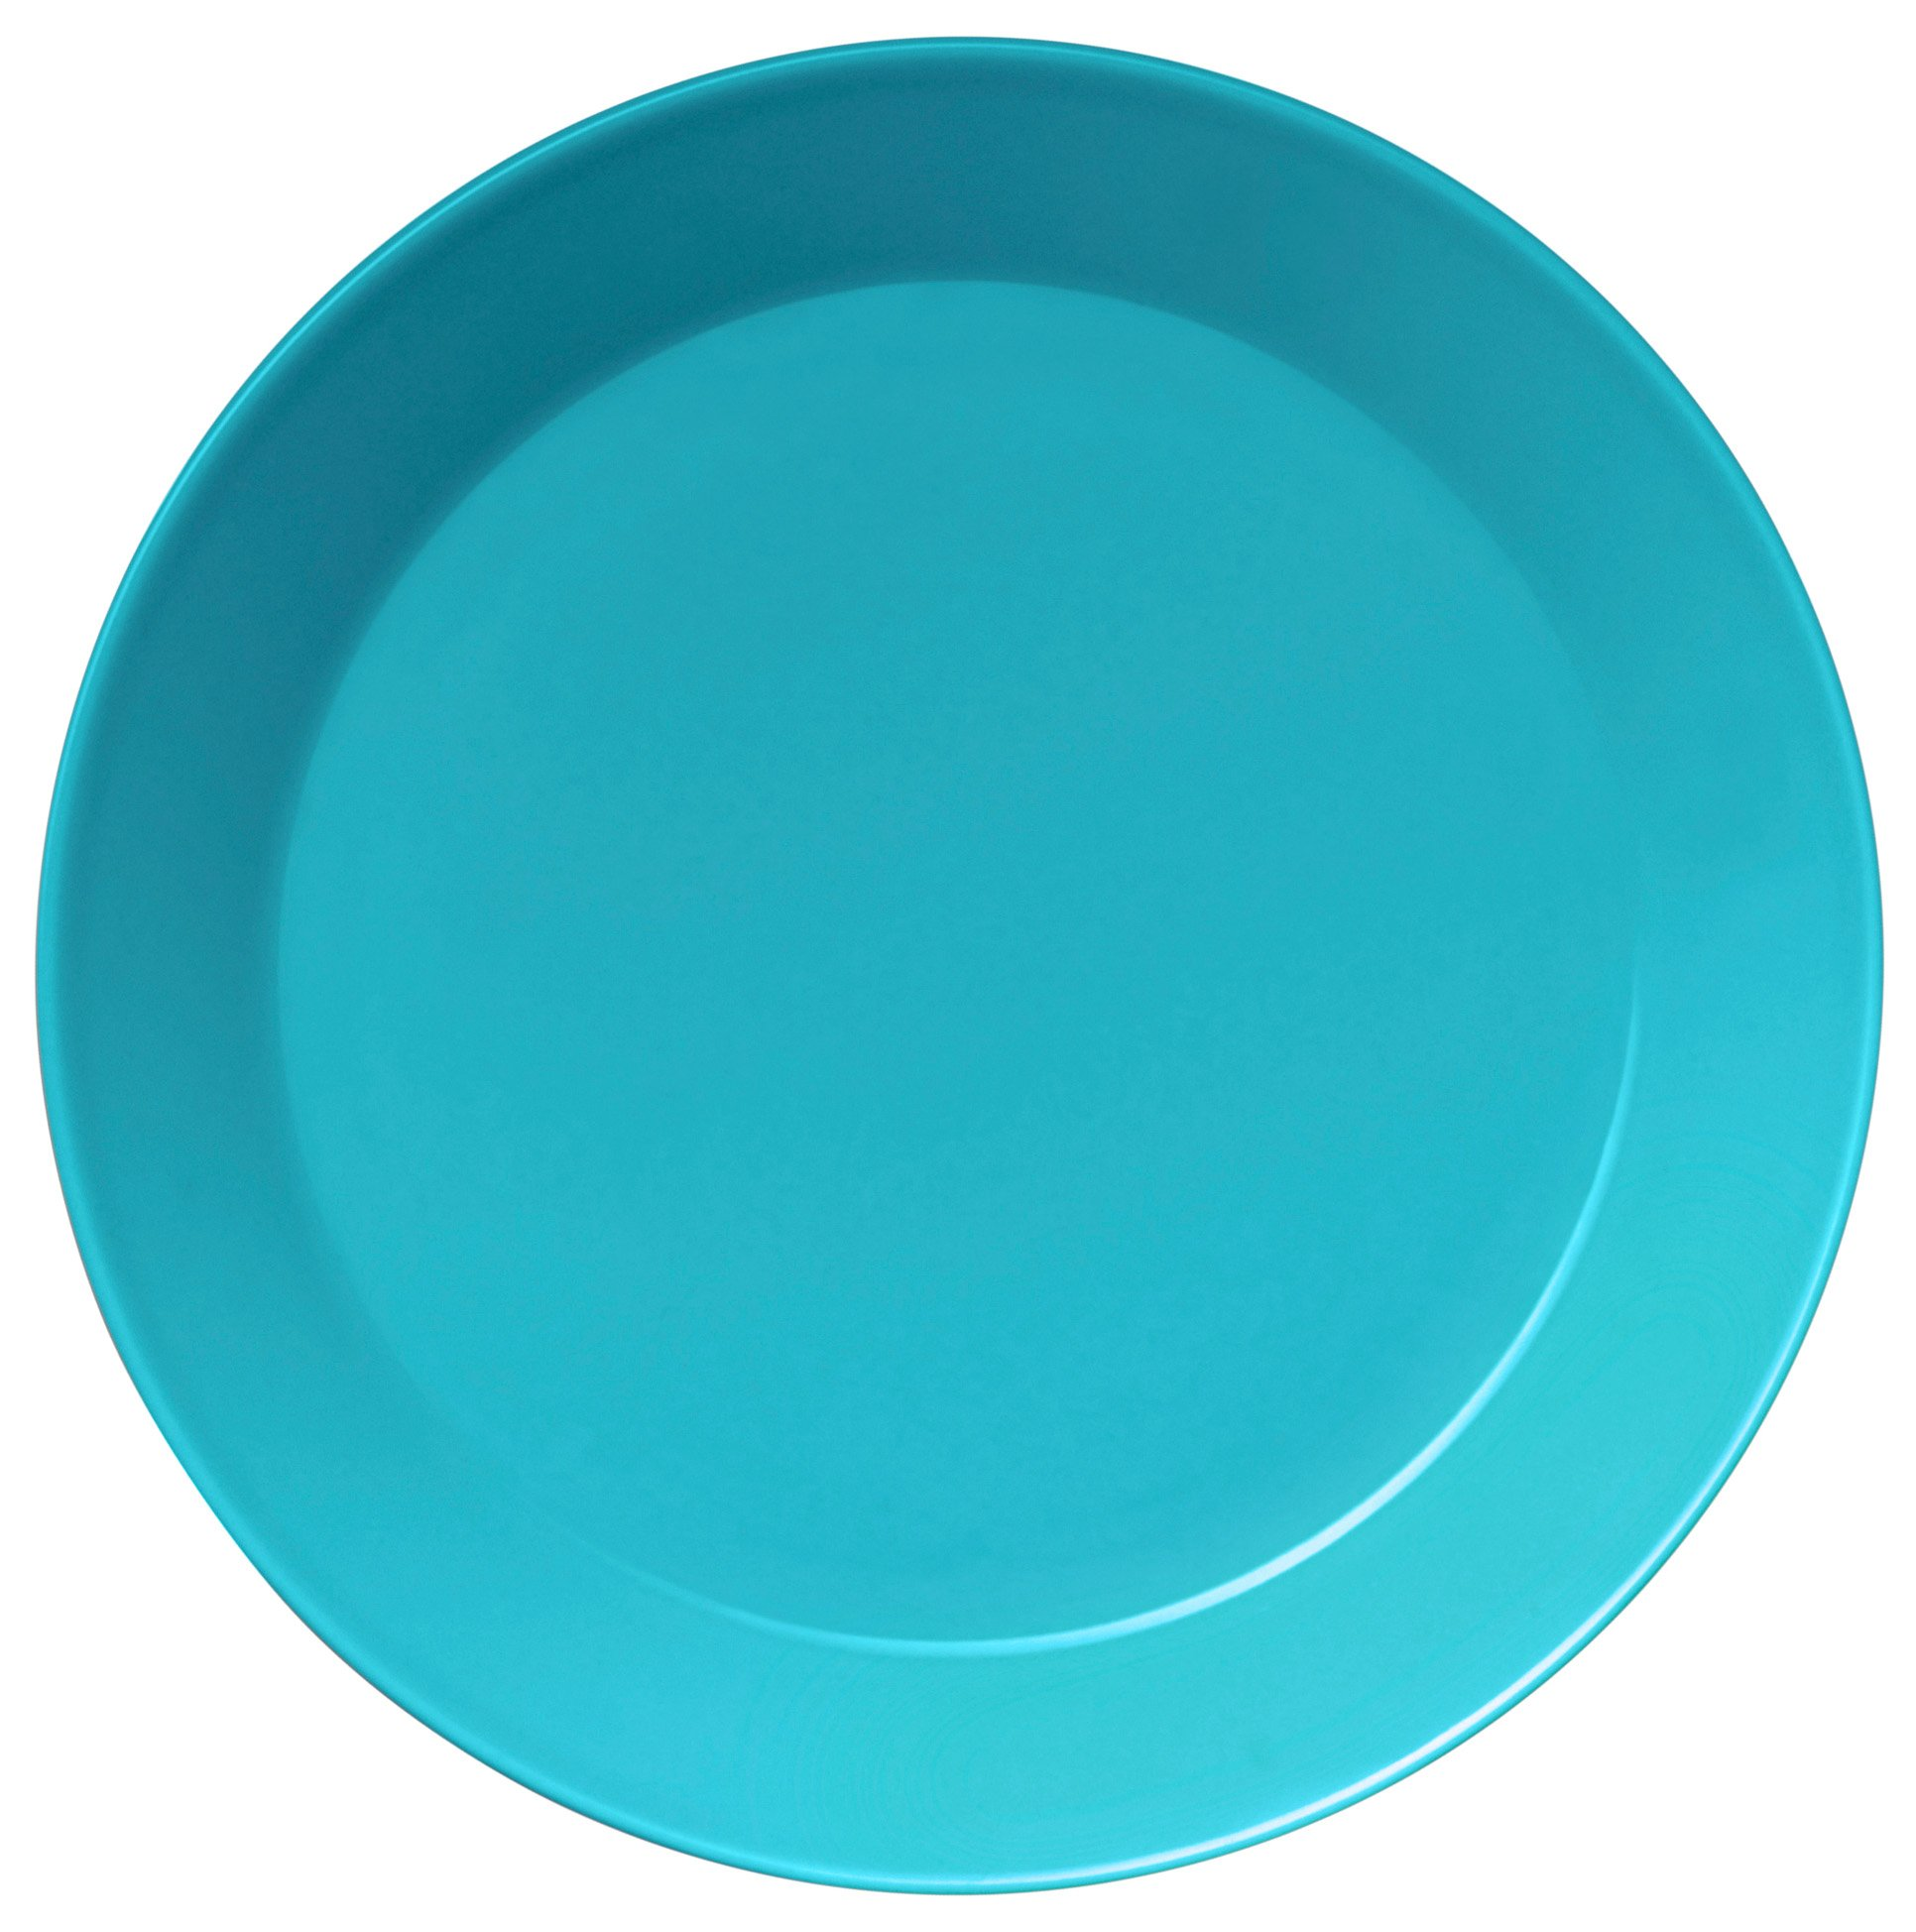 Iittala Teema 6-3/4-Inch Bread and Butter Plate, Turquoise